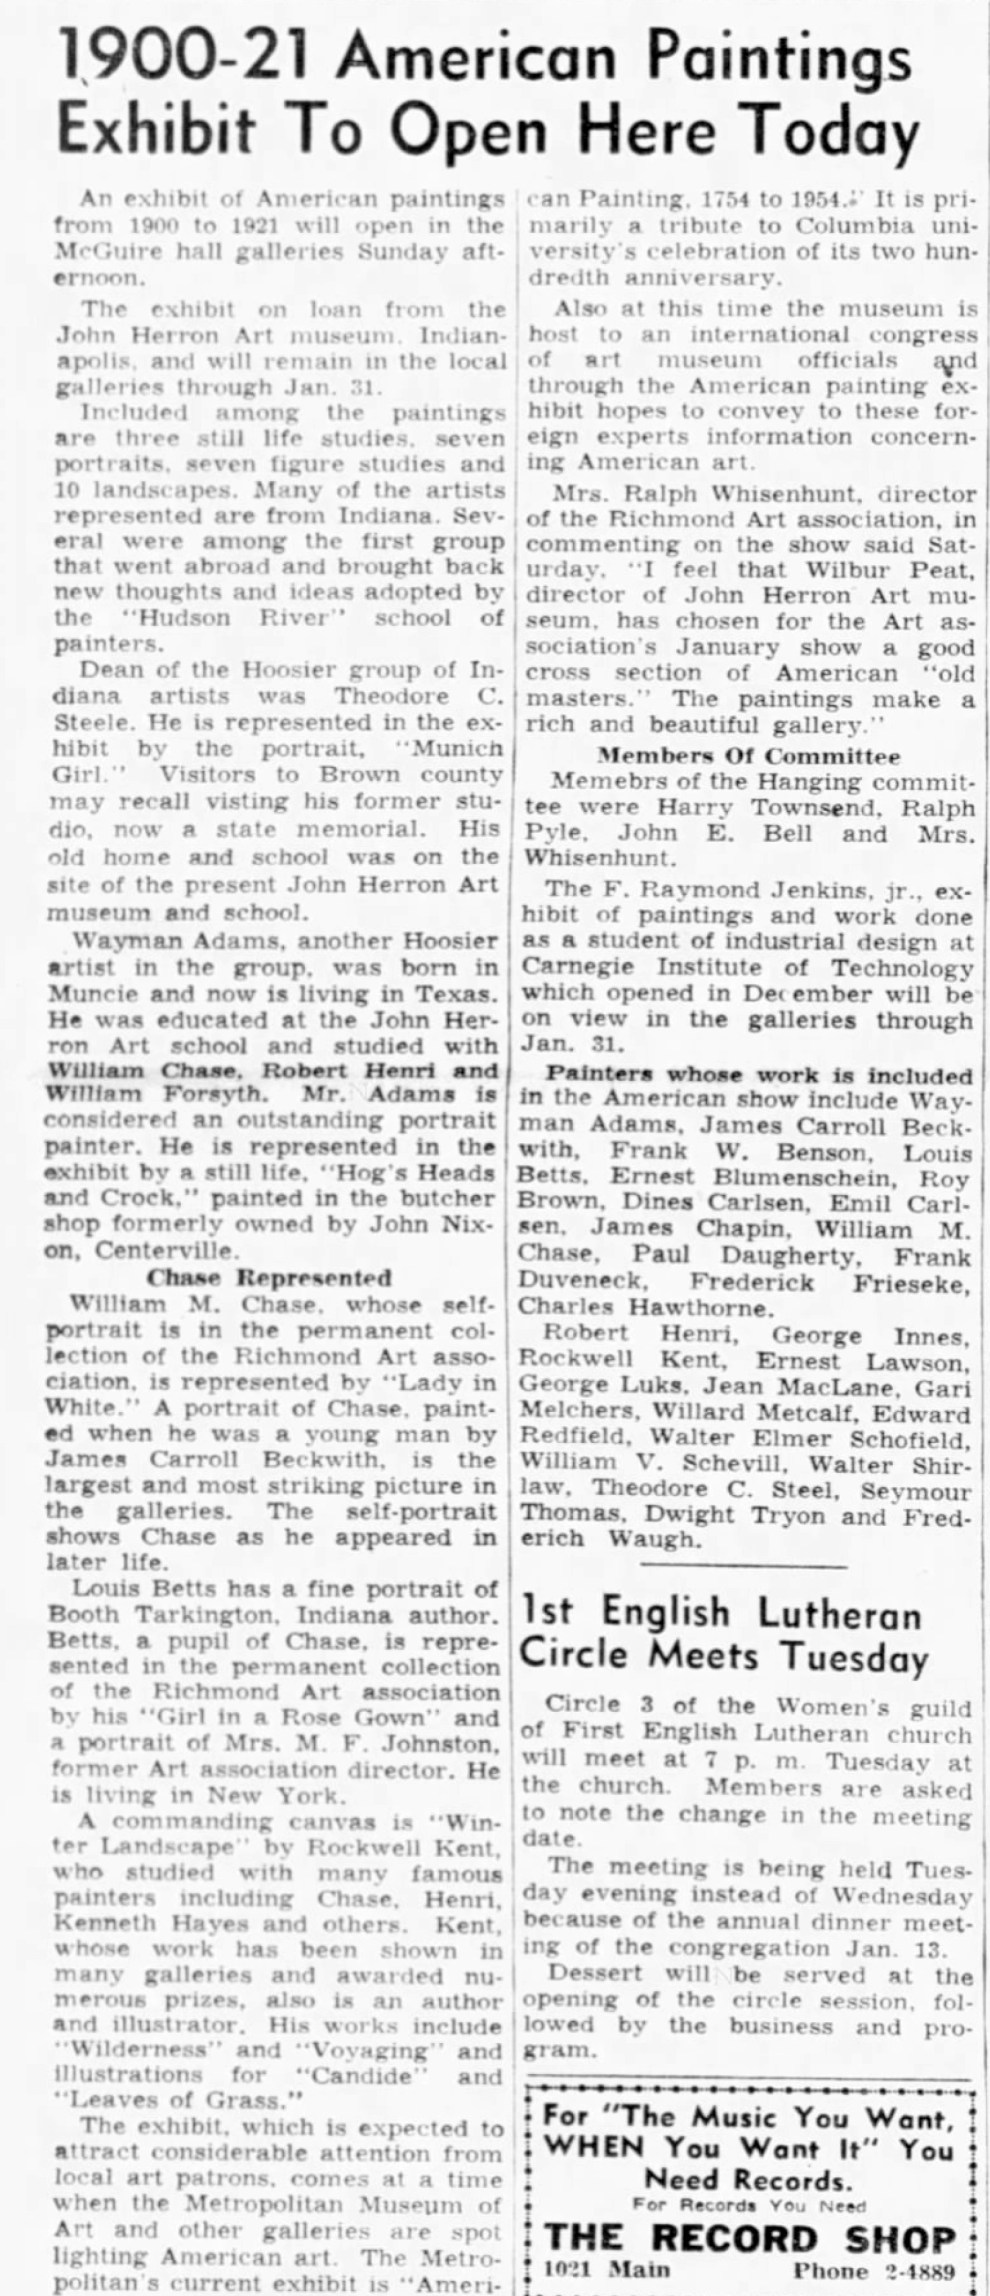 """Palladium-Item, Richmond, IN, """"1900-21 American paintings exhibit to open here today"""", Sunday, January 10, 1954, main edition, page 6, not illustrated"""